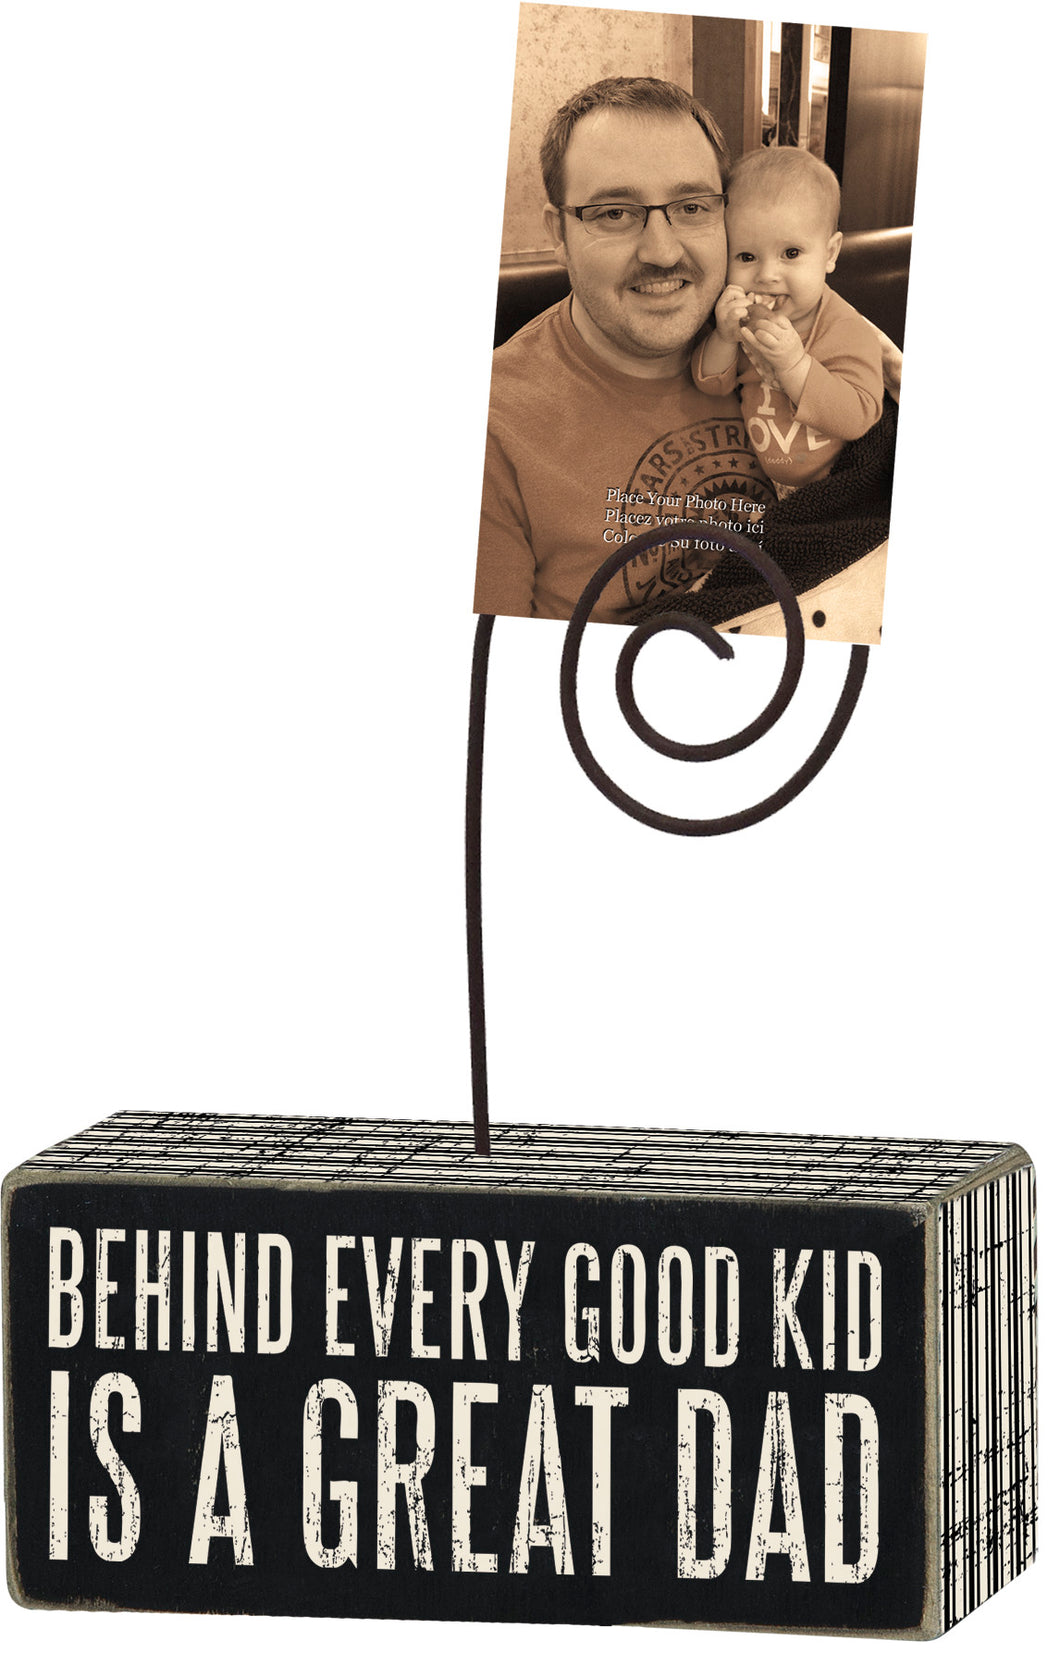 Great Dad - Photo Block